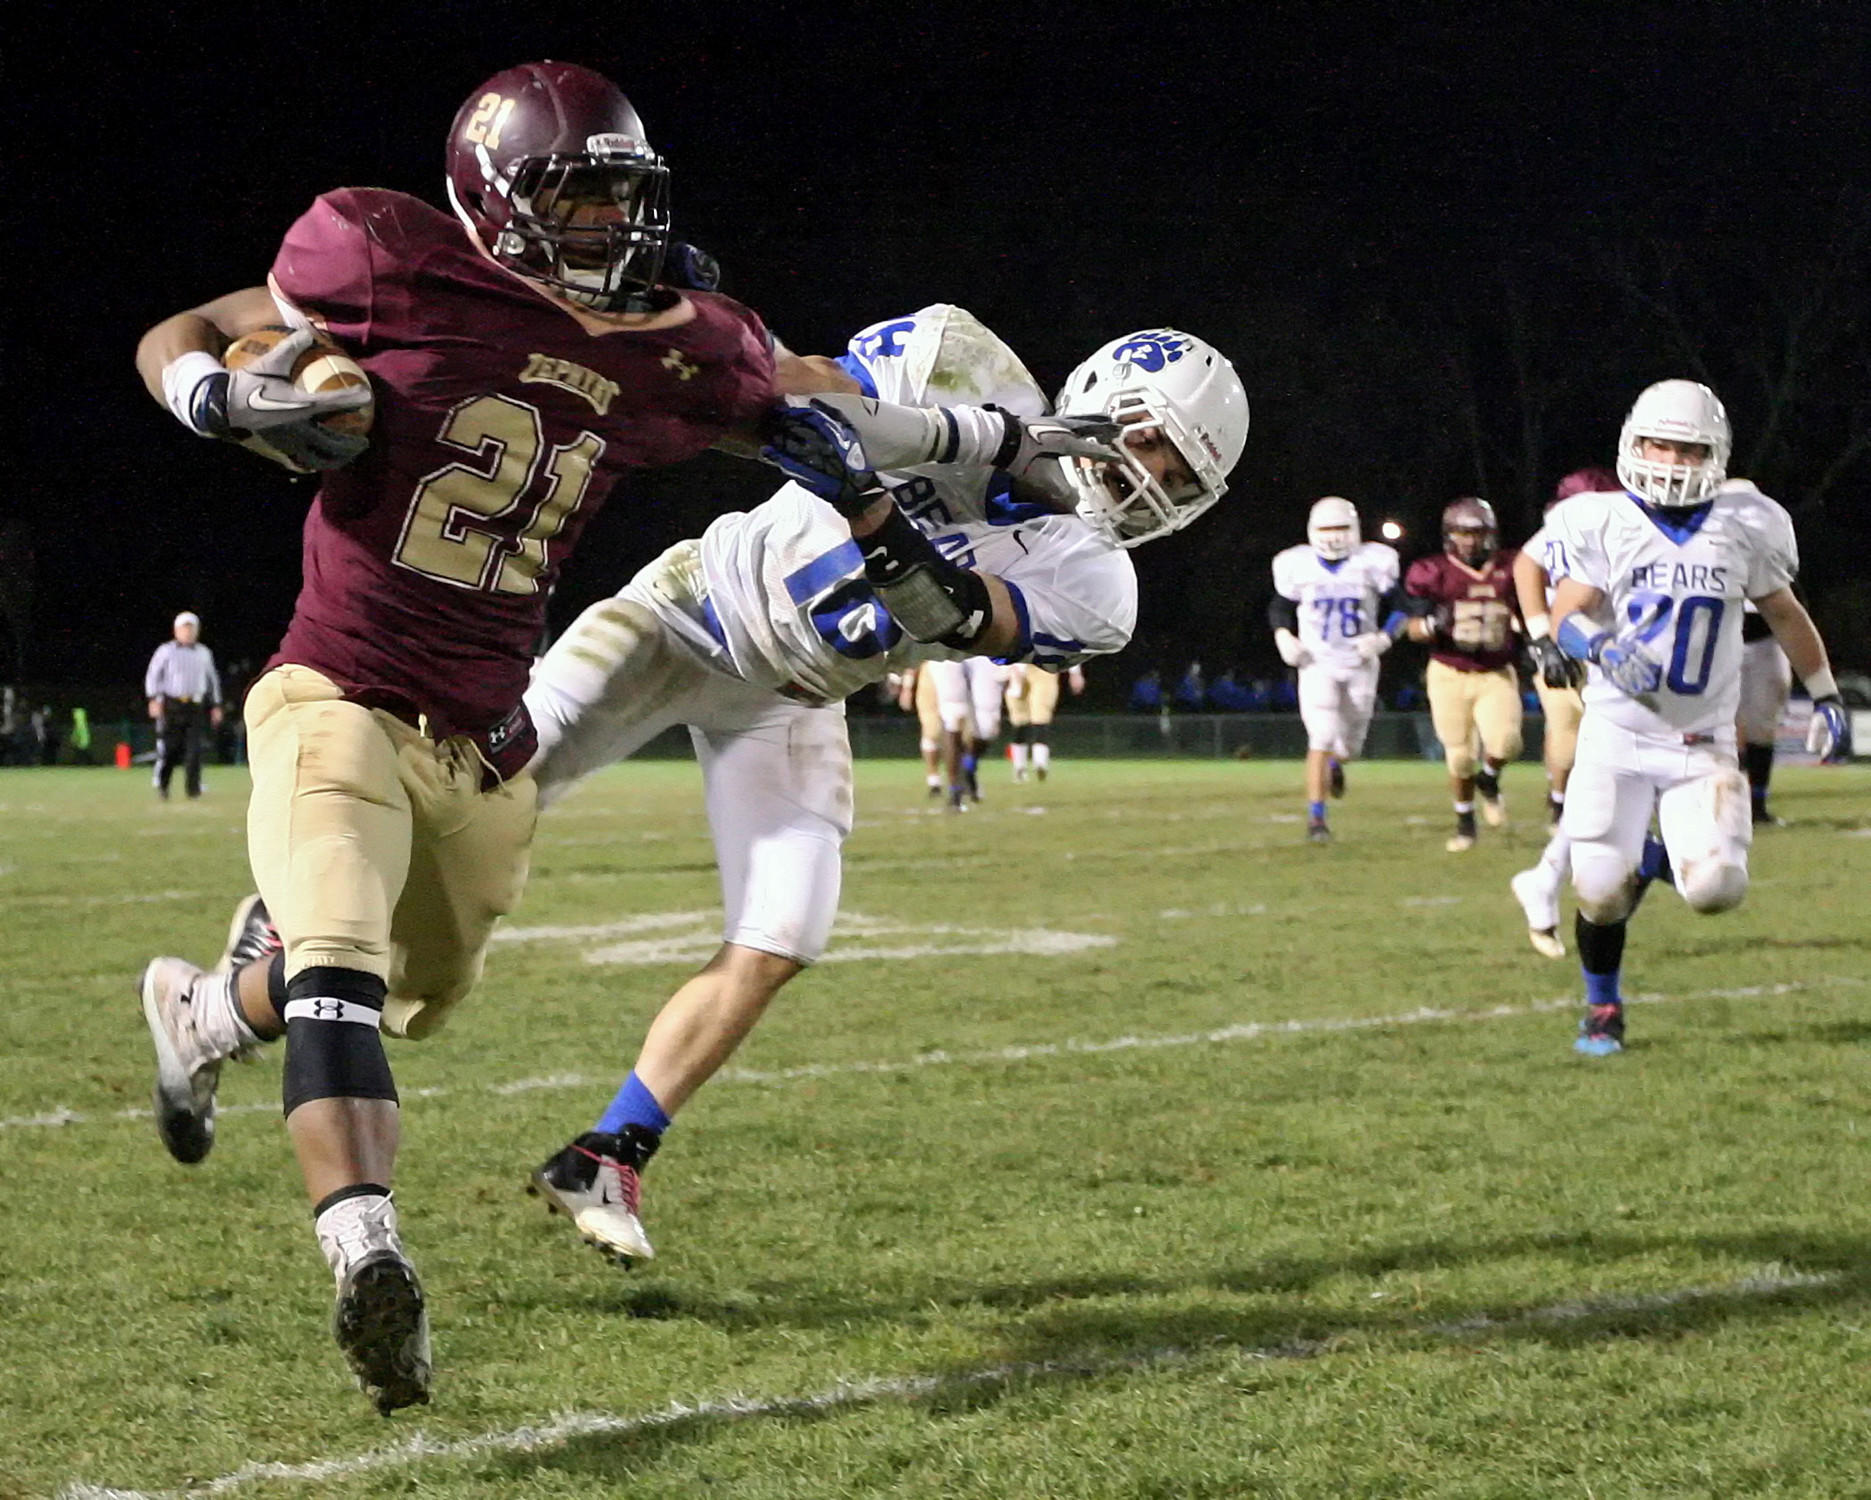 Whitehall RB Saquon Barkley continues to receive scholarship offers but remains committed to Penn State.